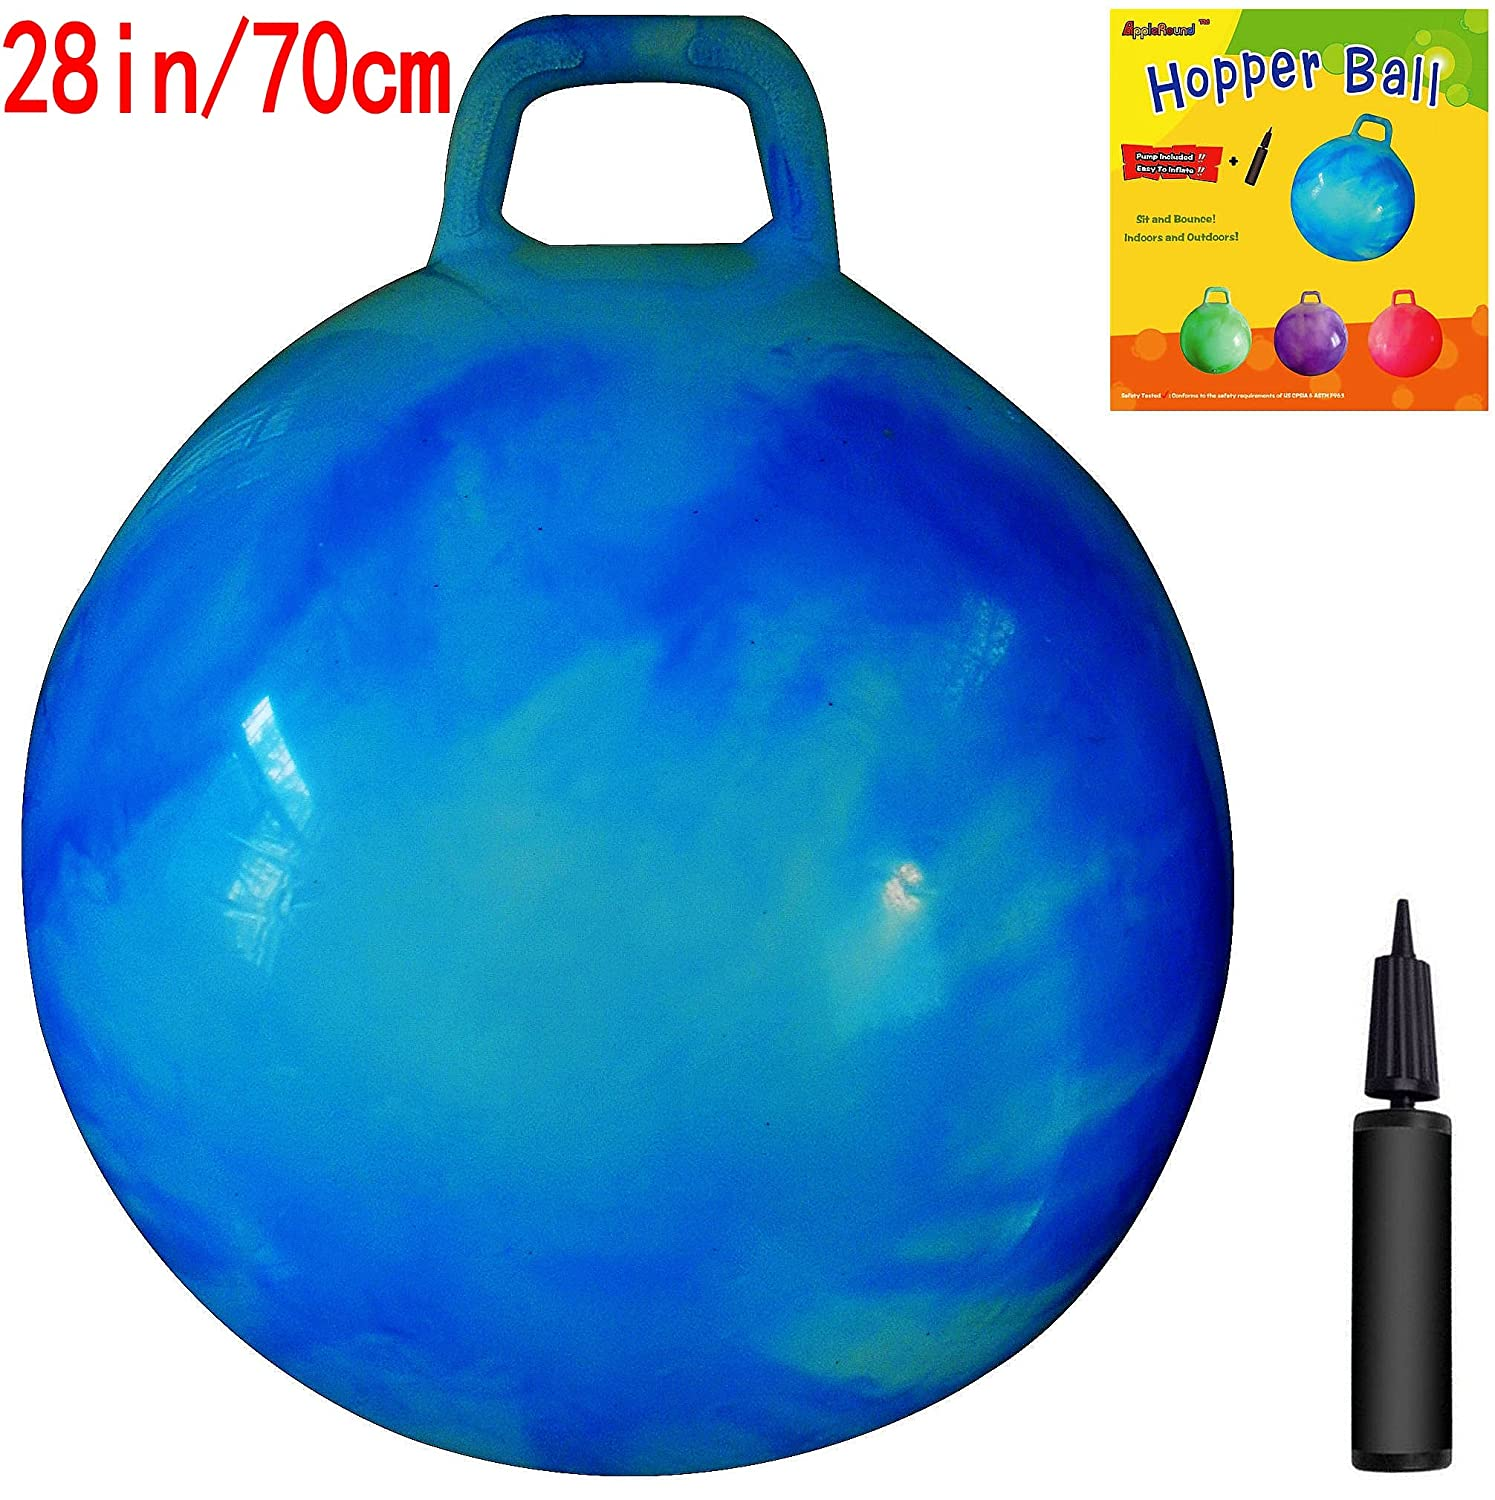 AppleRound Space Hopper Ball 28in 70cm Diameter for Age 13 Pump Included Hop Ball Kangaroo Bouncer Hoppity Hop Sit and Bounce Jumping Ball